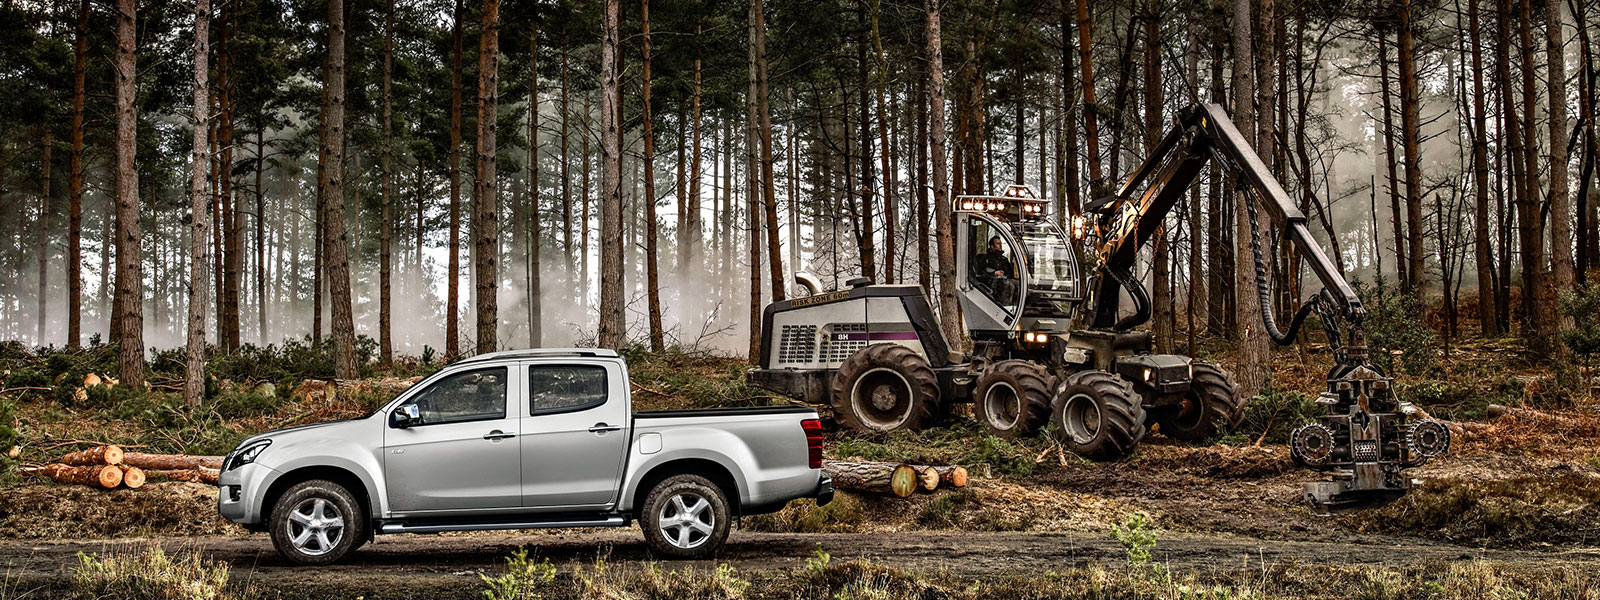 luetke_header_12H_Forest5_Double_Cab.jpg